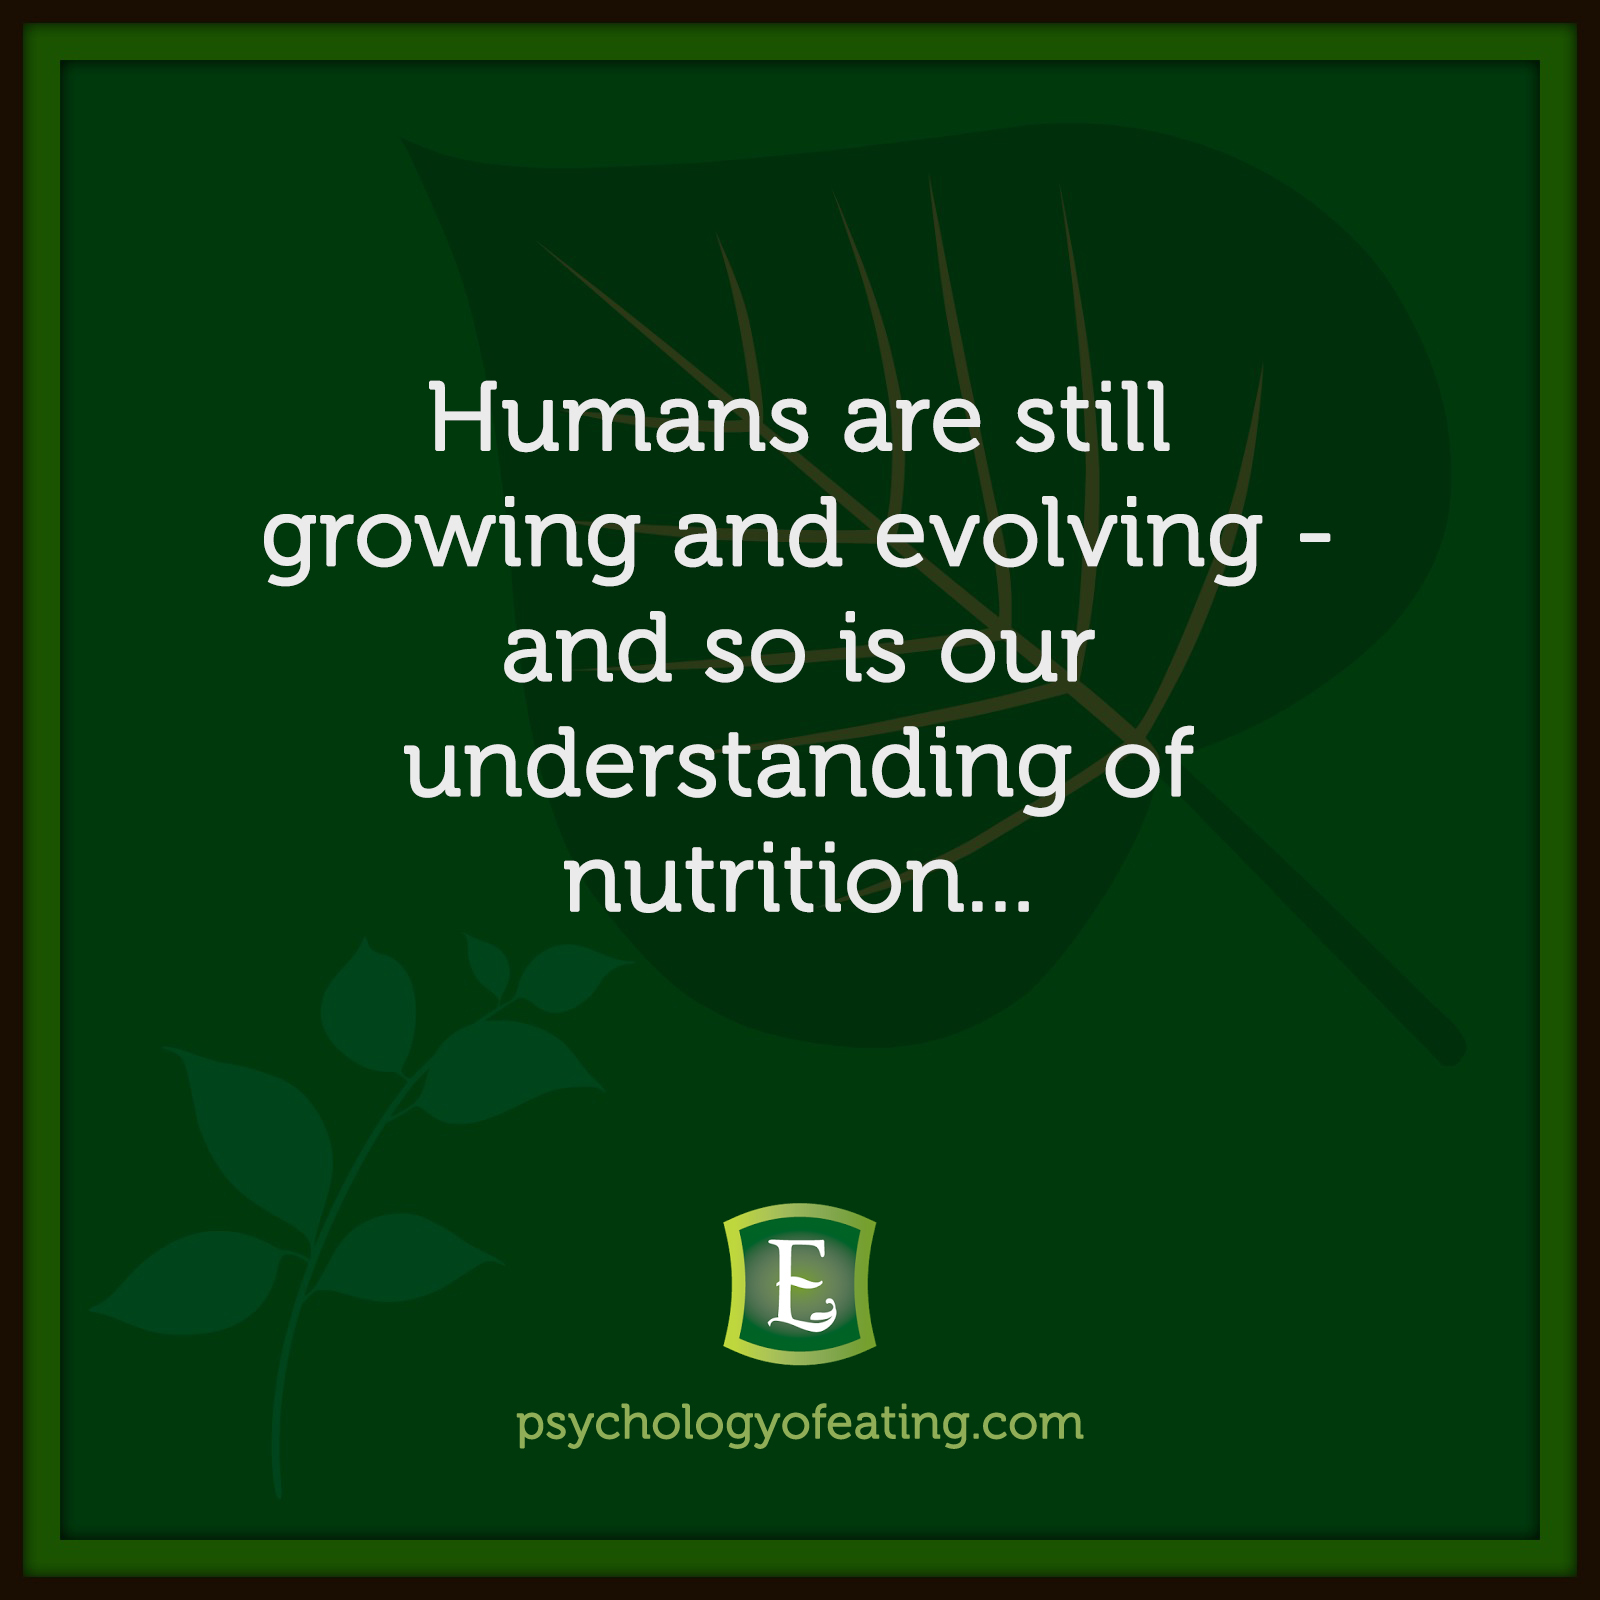 Humans are still growing and evolving – and so is our understanding of nutrition… #health #nutrition #eatingpsychology #IPE